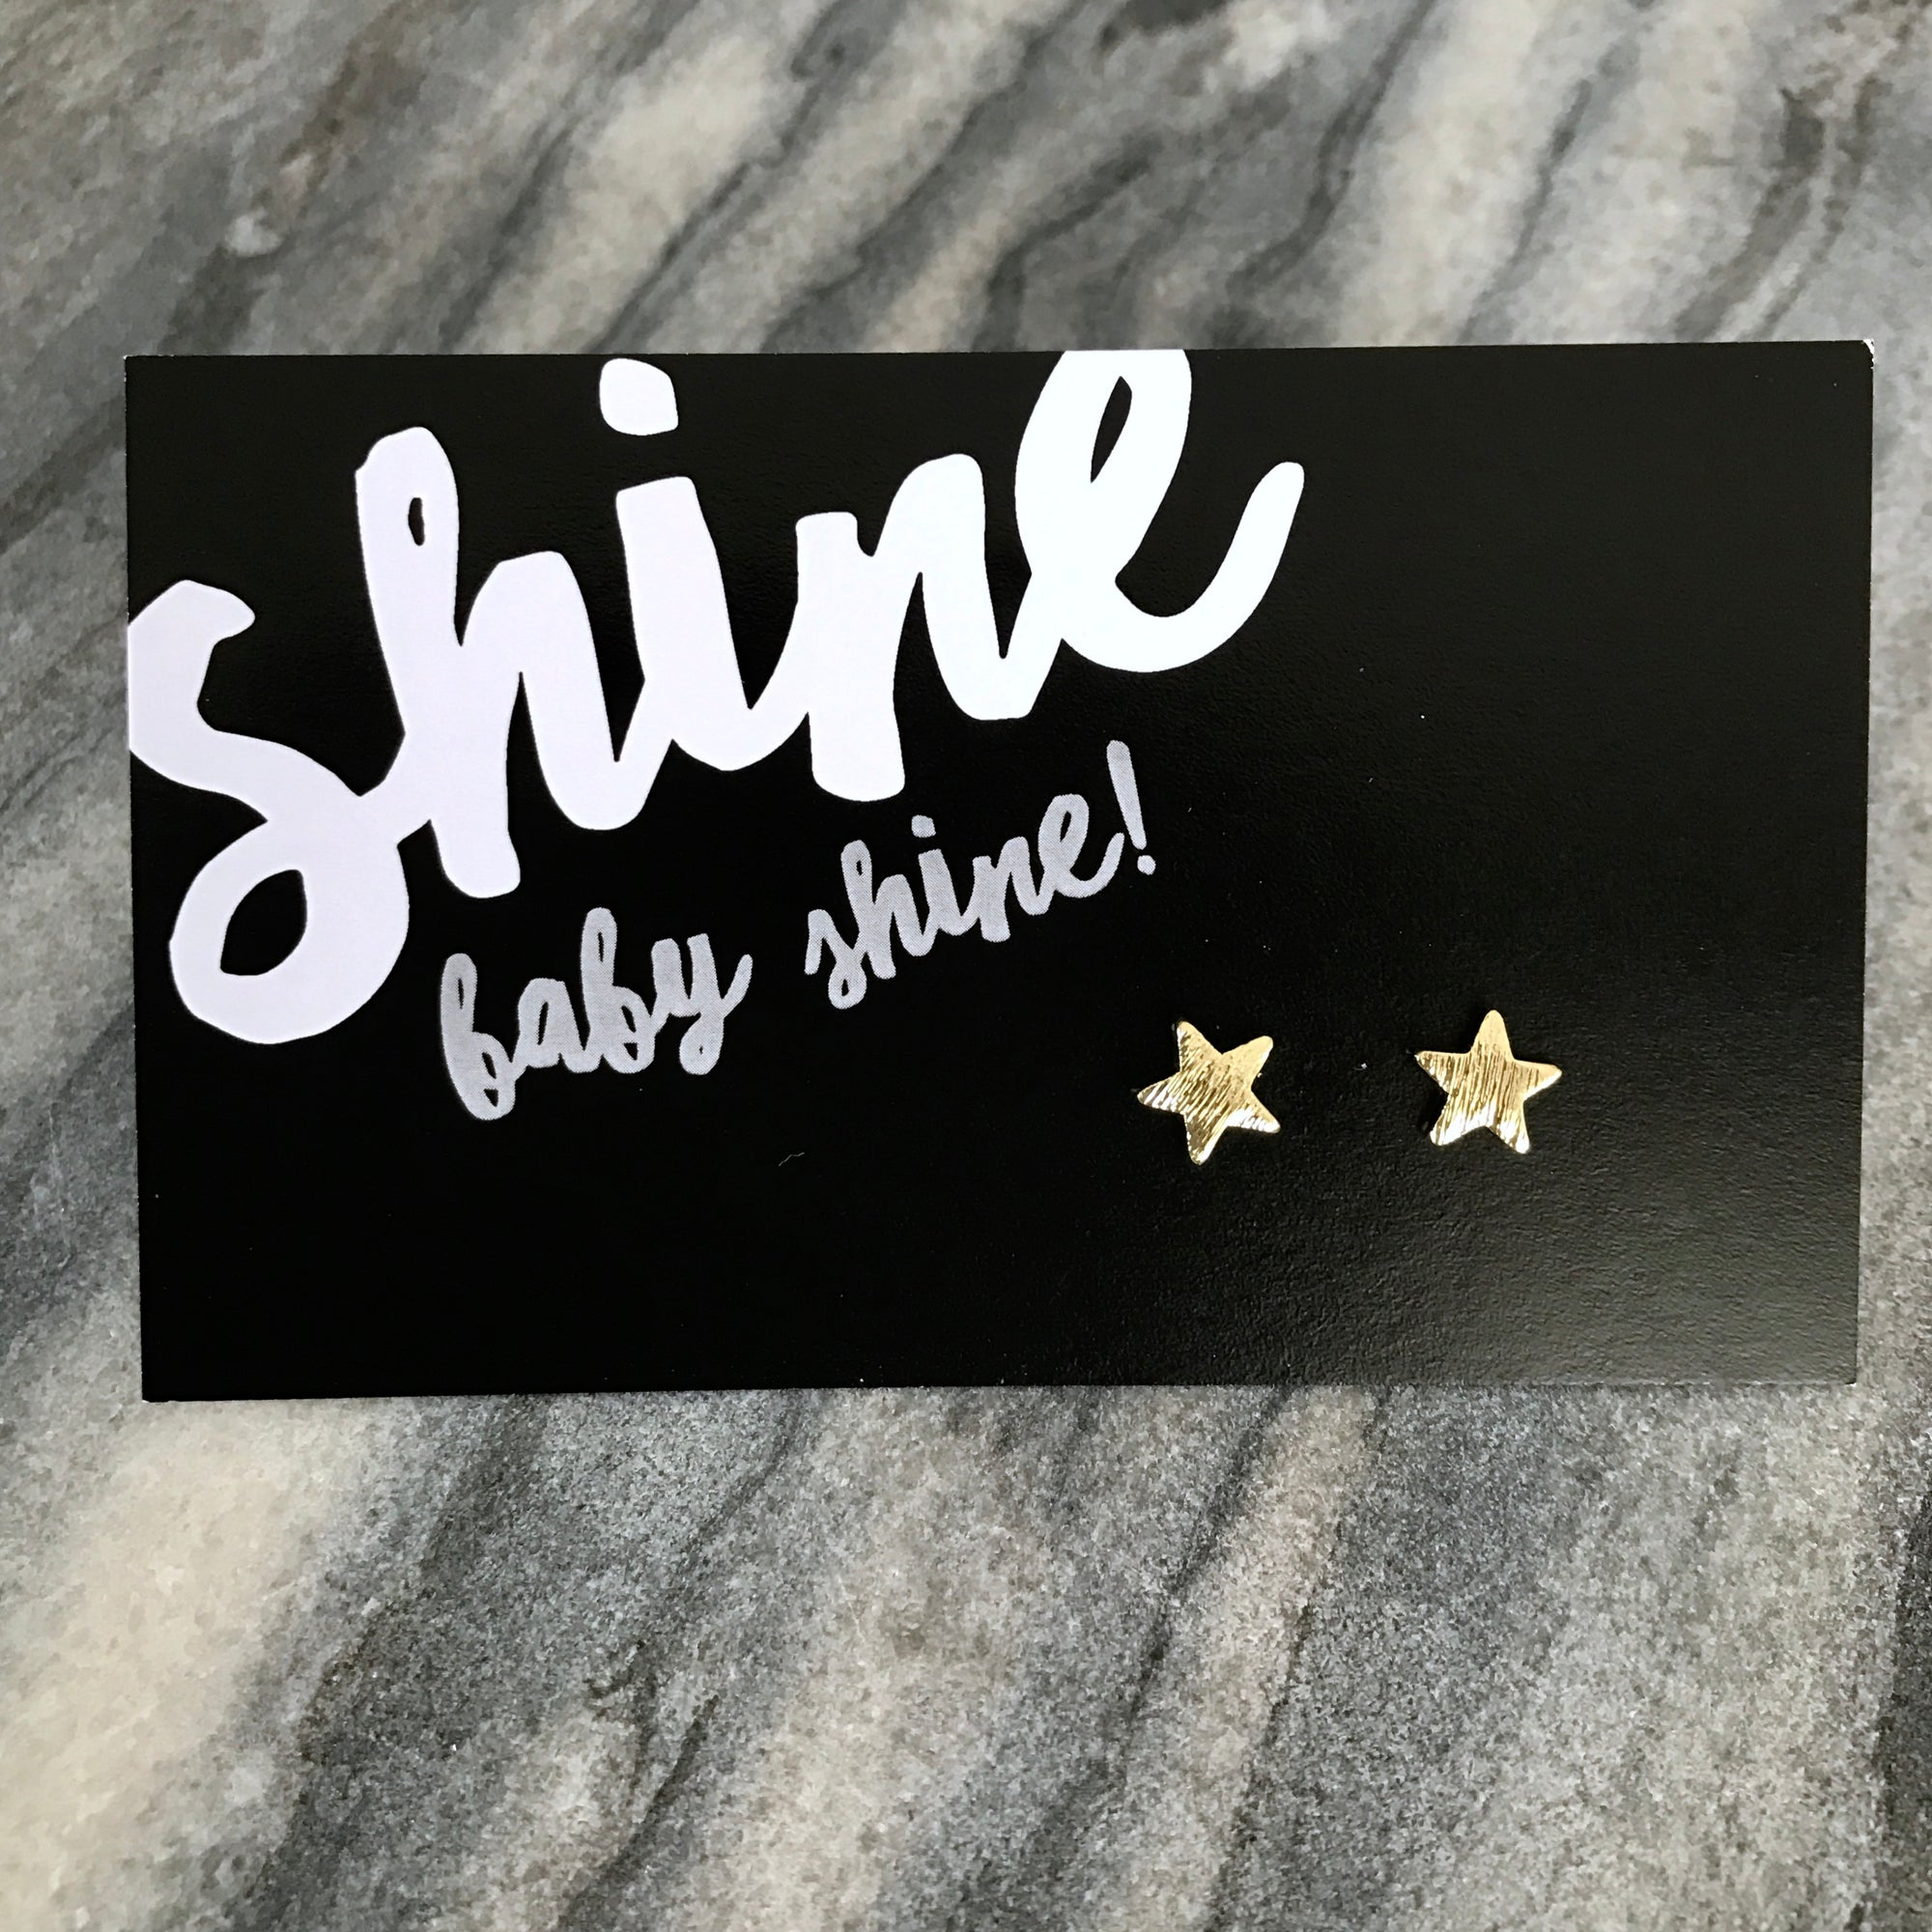 Shine Baby Shine! - Tiny Star Studs  - Brushed look Gold Earrings (9709)